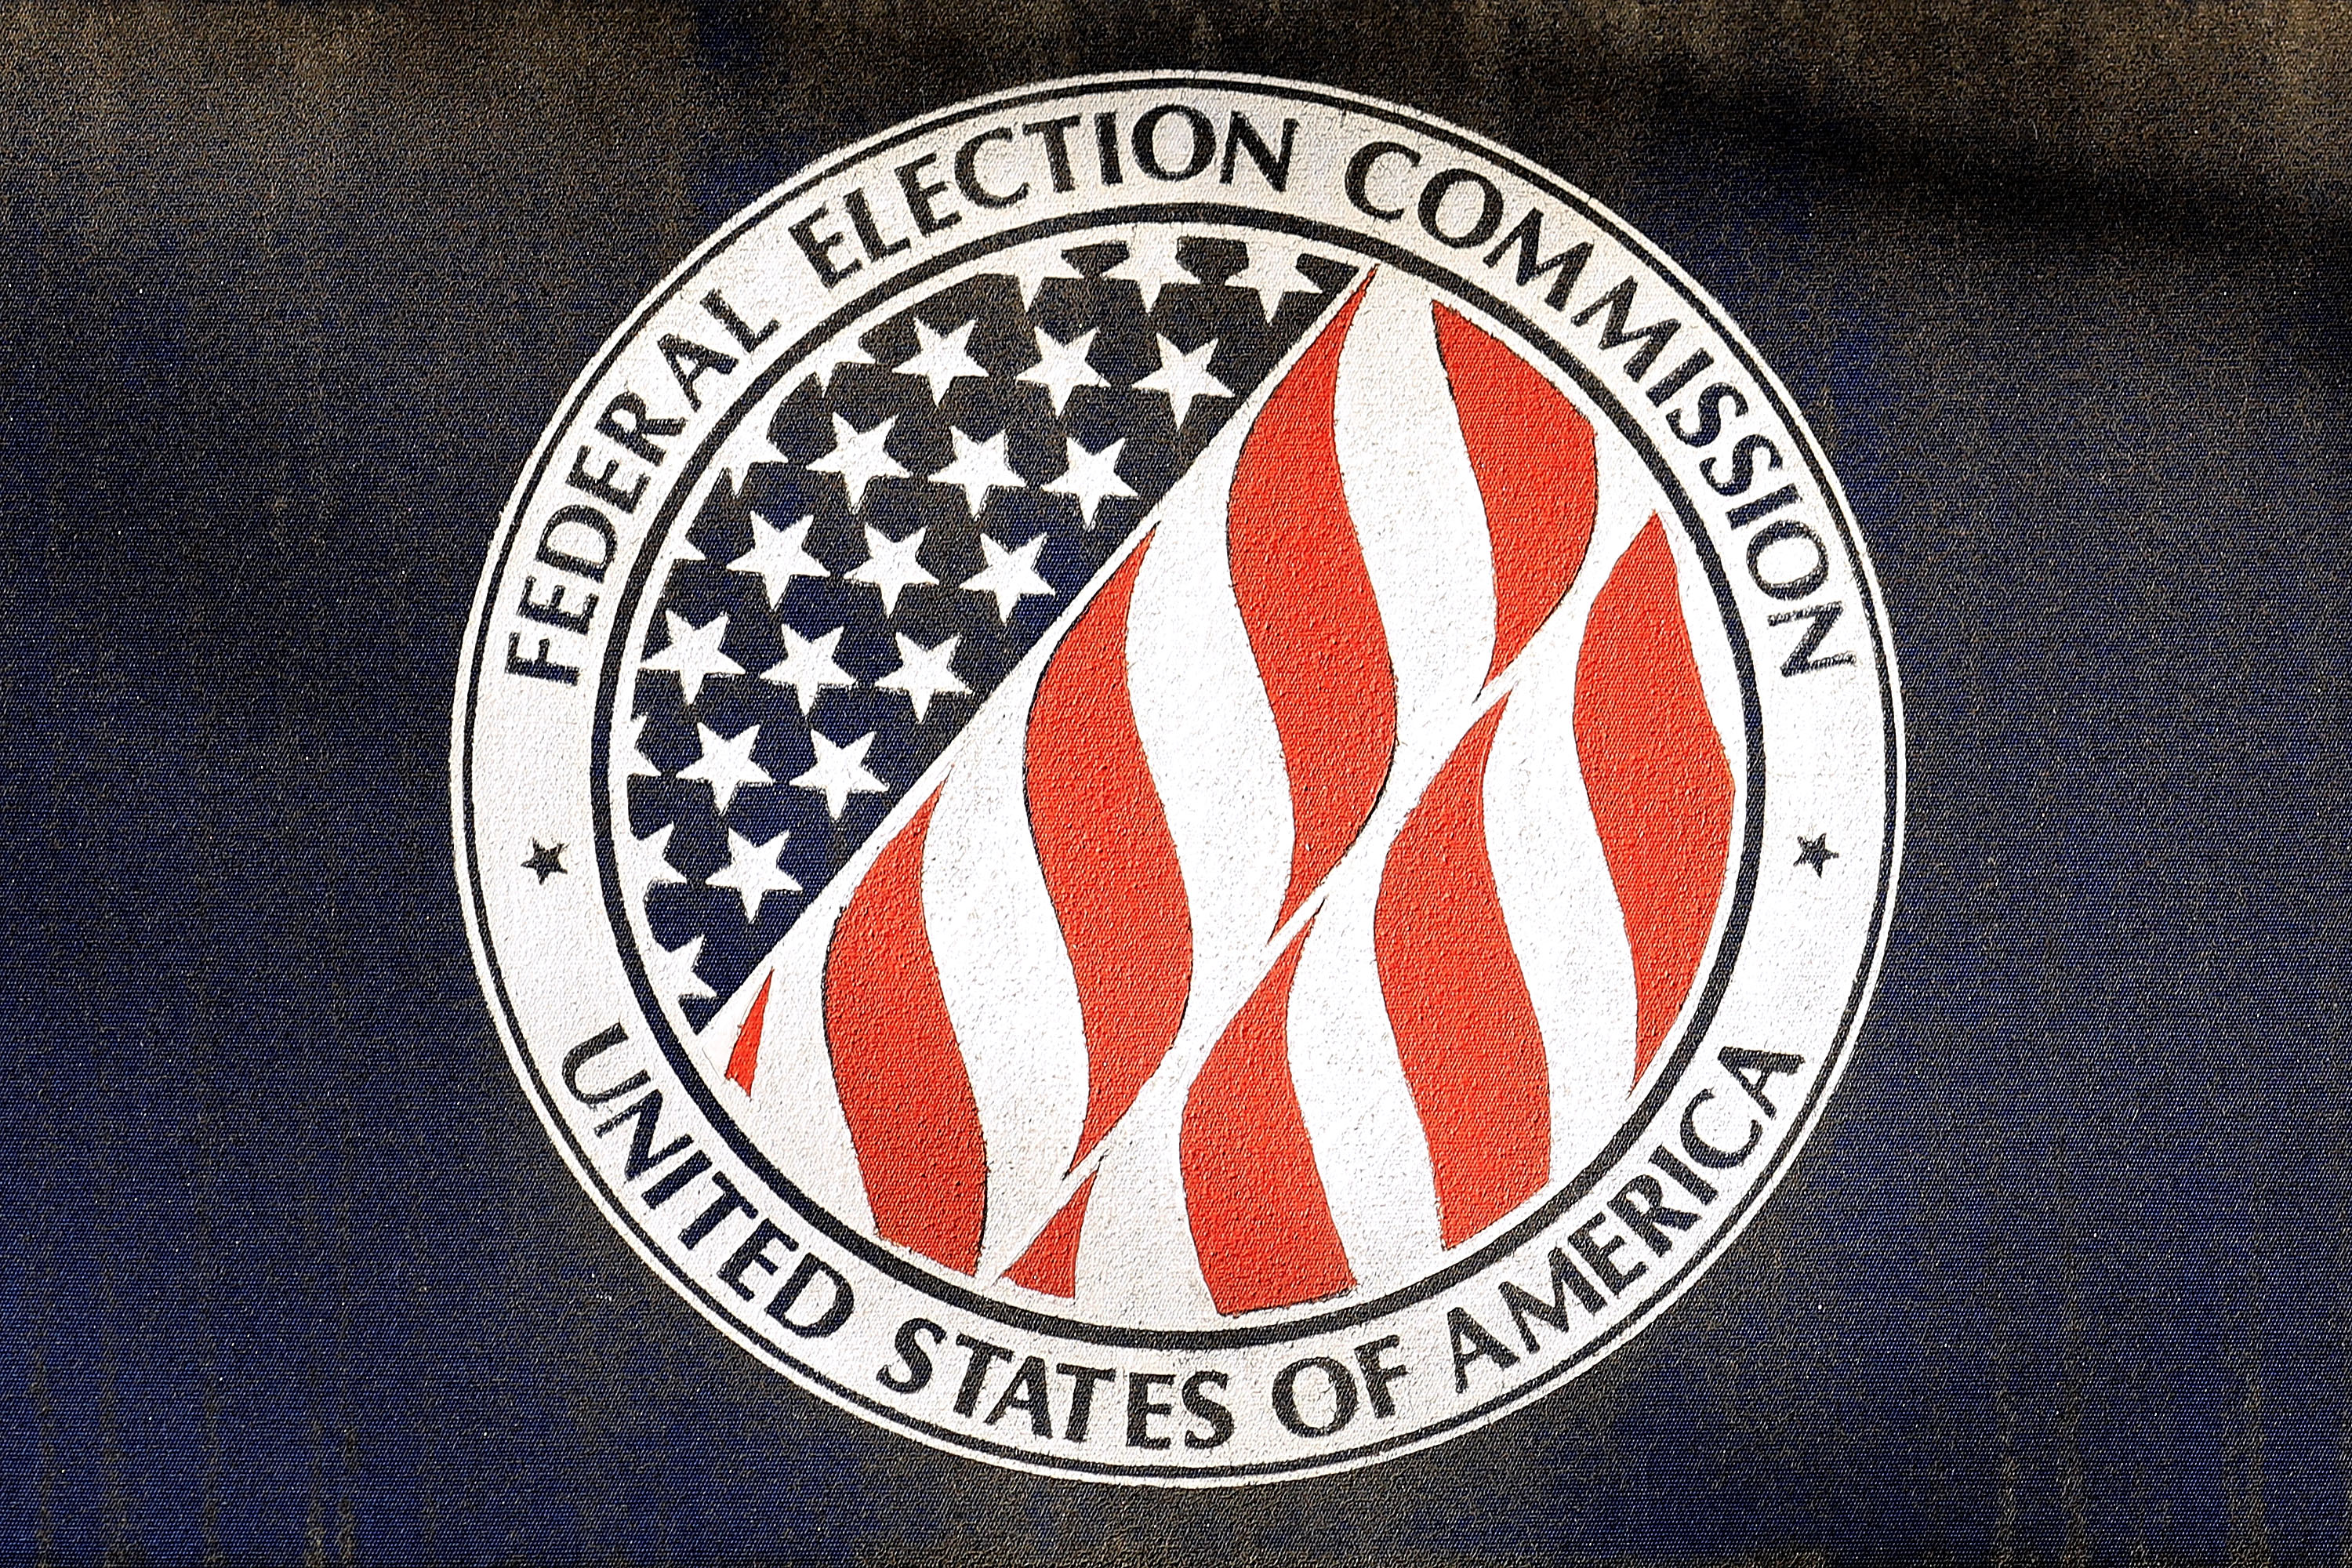 The seal of the Federal Election Commission is printed on window awnings outside its headquarters Oct. 24, 2016 in Washington, D.C. (Photo by Chip Somodevilla/Getty Images)